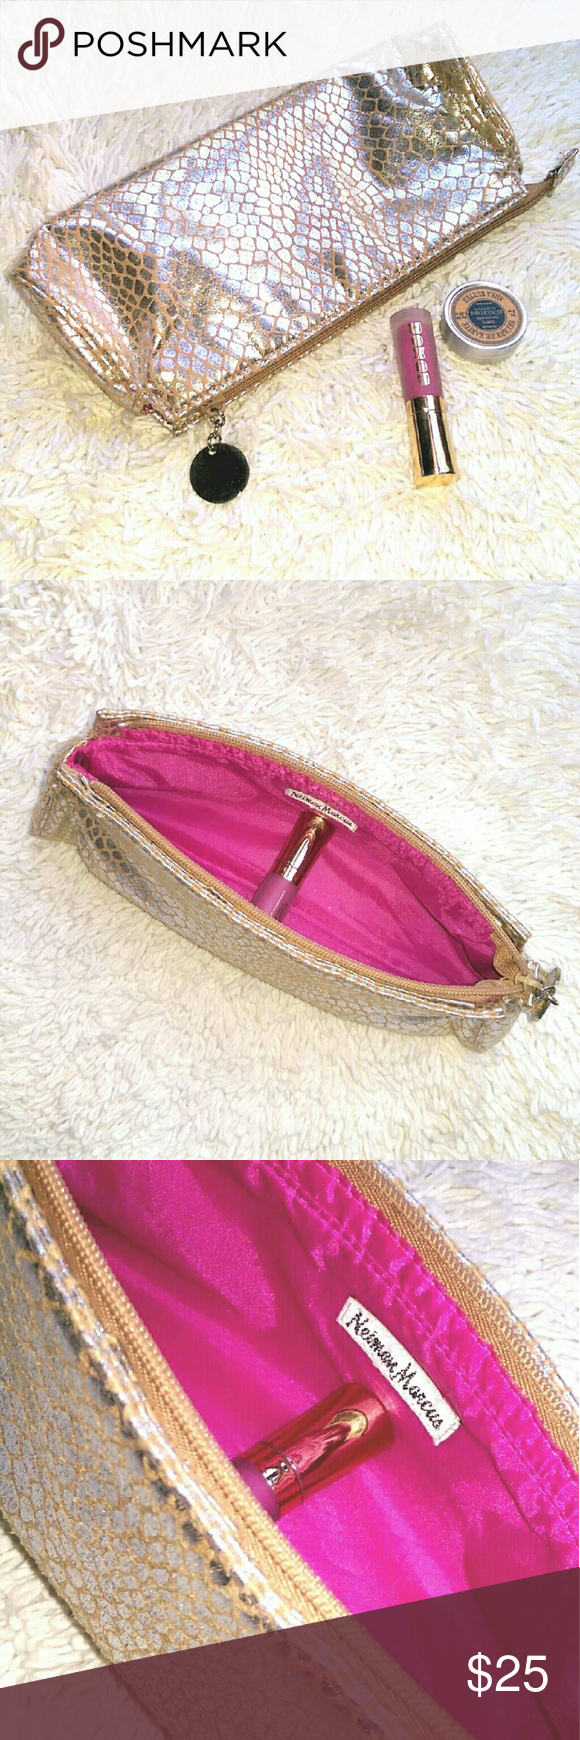 🆕 {Neiman Marcus} clutch / bag Neiman Marcus * Bag - Clutch * Snakeskin Embossed  * Silver & Gold Faux Suede  * Bright Pink Nylon Inner Lining  * Top Zip Closure with Silver Hardware Pull * BRAND NEW - FLAWLESS  * Gorgeous, super soft metallic clutch with a subtle pattern.  Great for date night, a wedding, or any occasion!   * Bags * Small * Pouch * Case * Evening * Special Occasion * Wedding * Reception * Neutral * Party Neiman Marcus Makeup